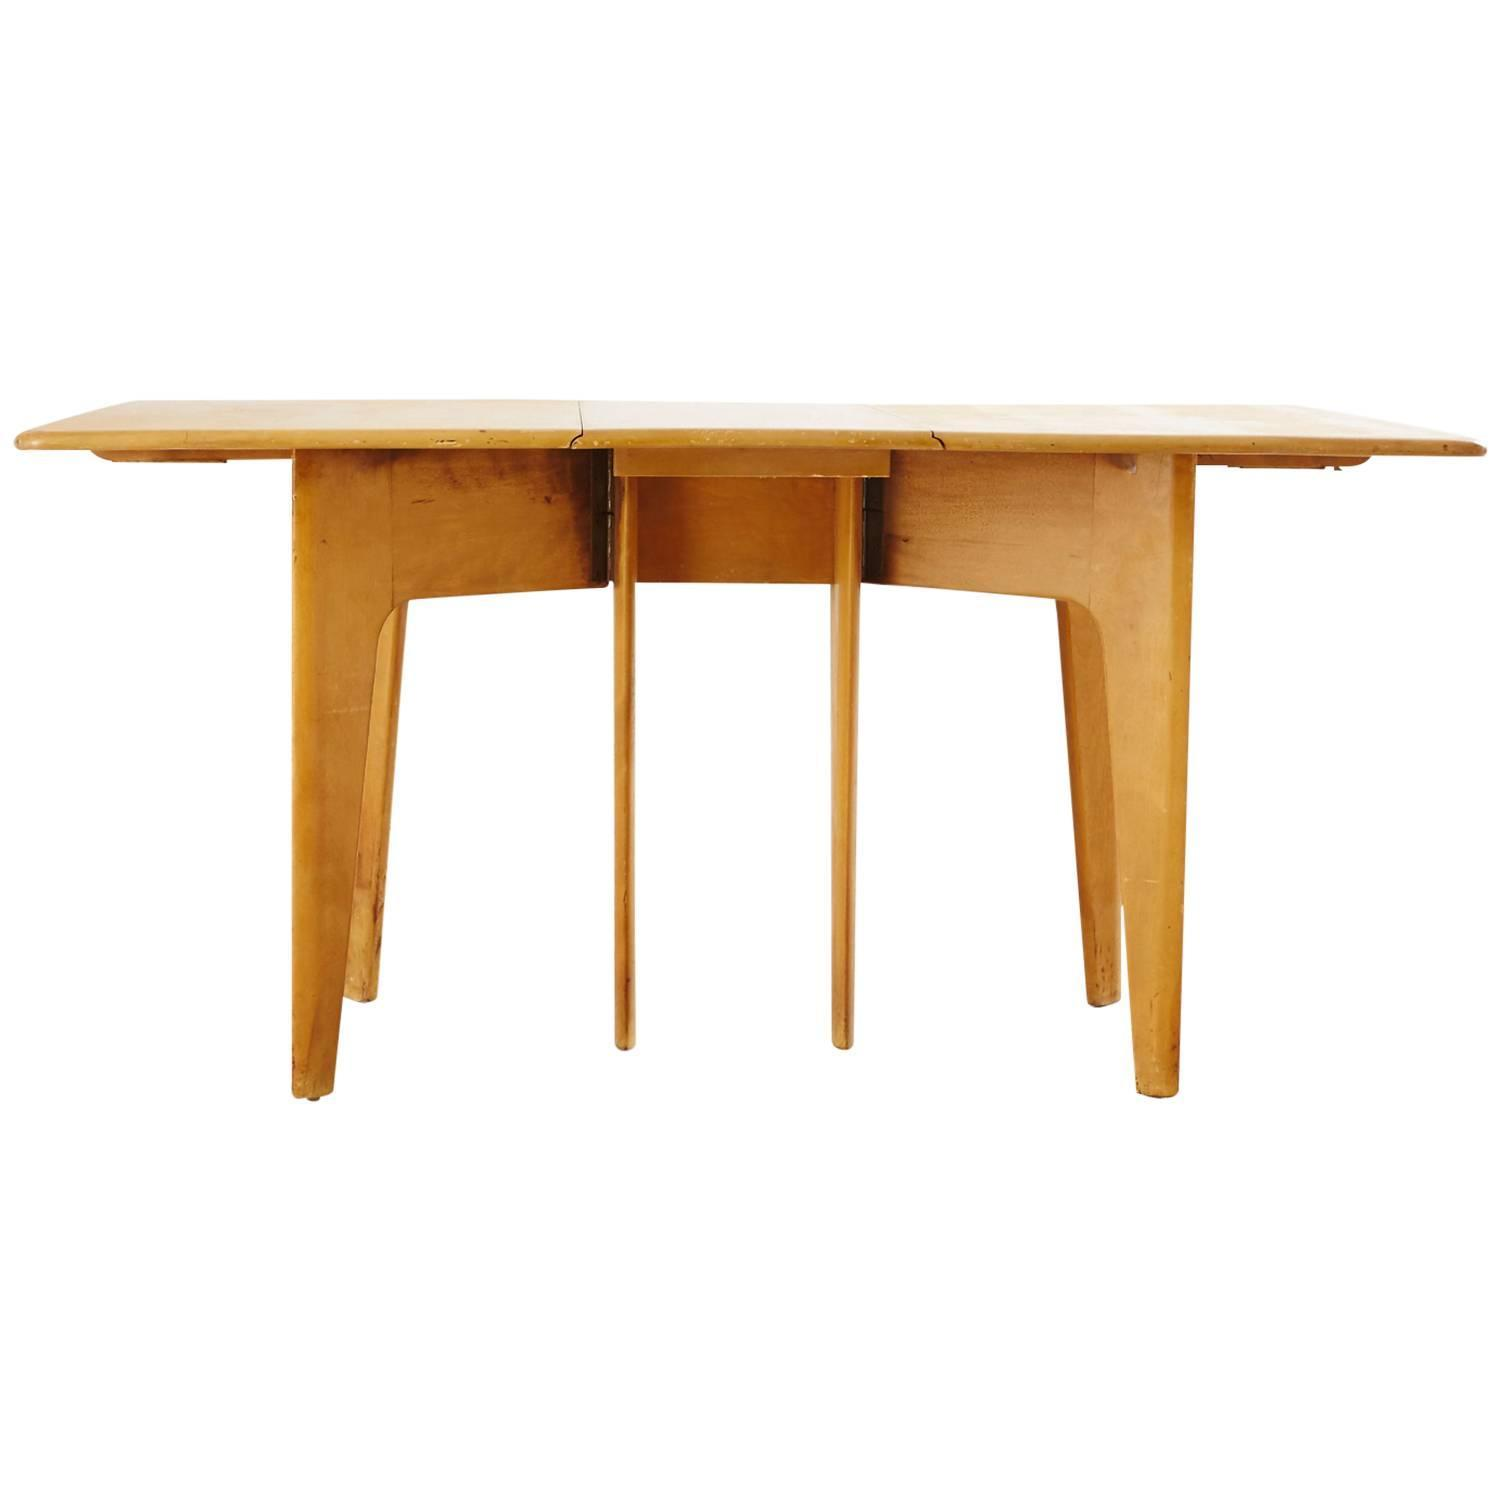 Heywood Wakefield Drop Leaf Dining Table For Sale at 1stdibs : 3674962z from www.1stdibs.com size 1500 x 1500 jpeg 40kB